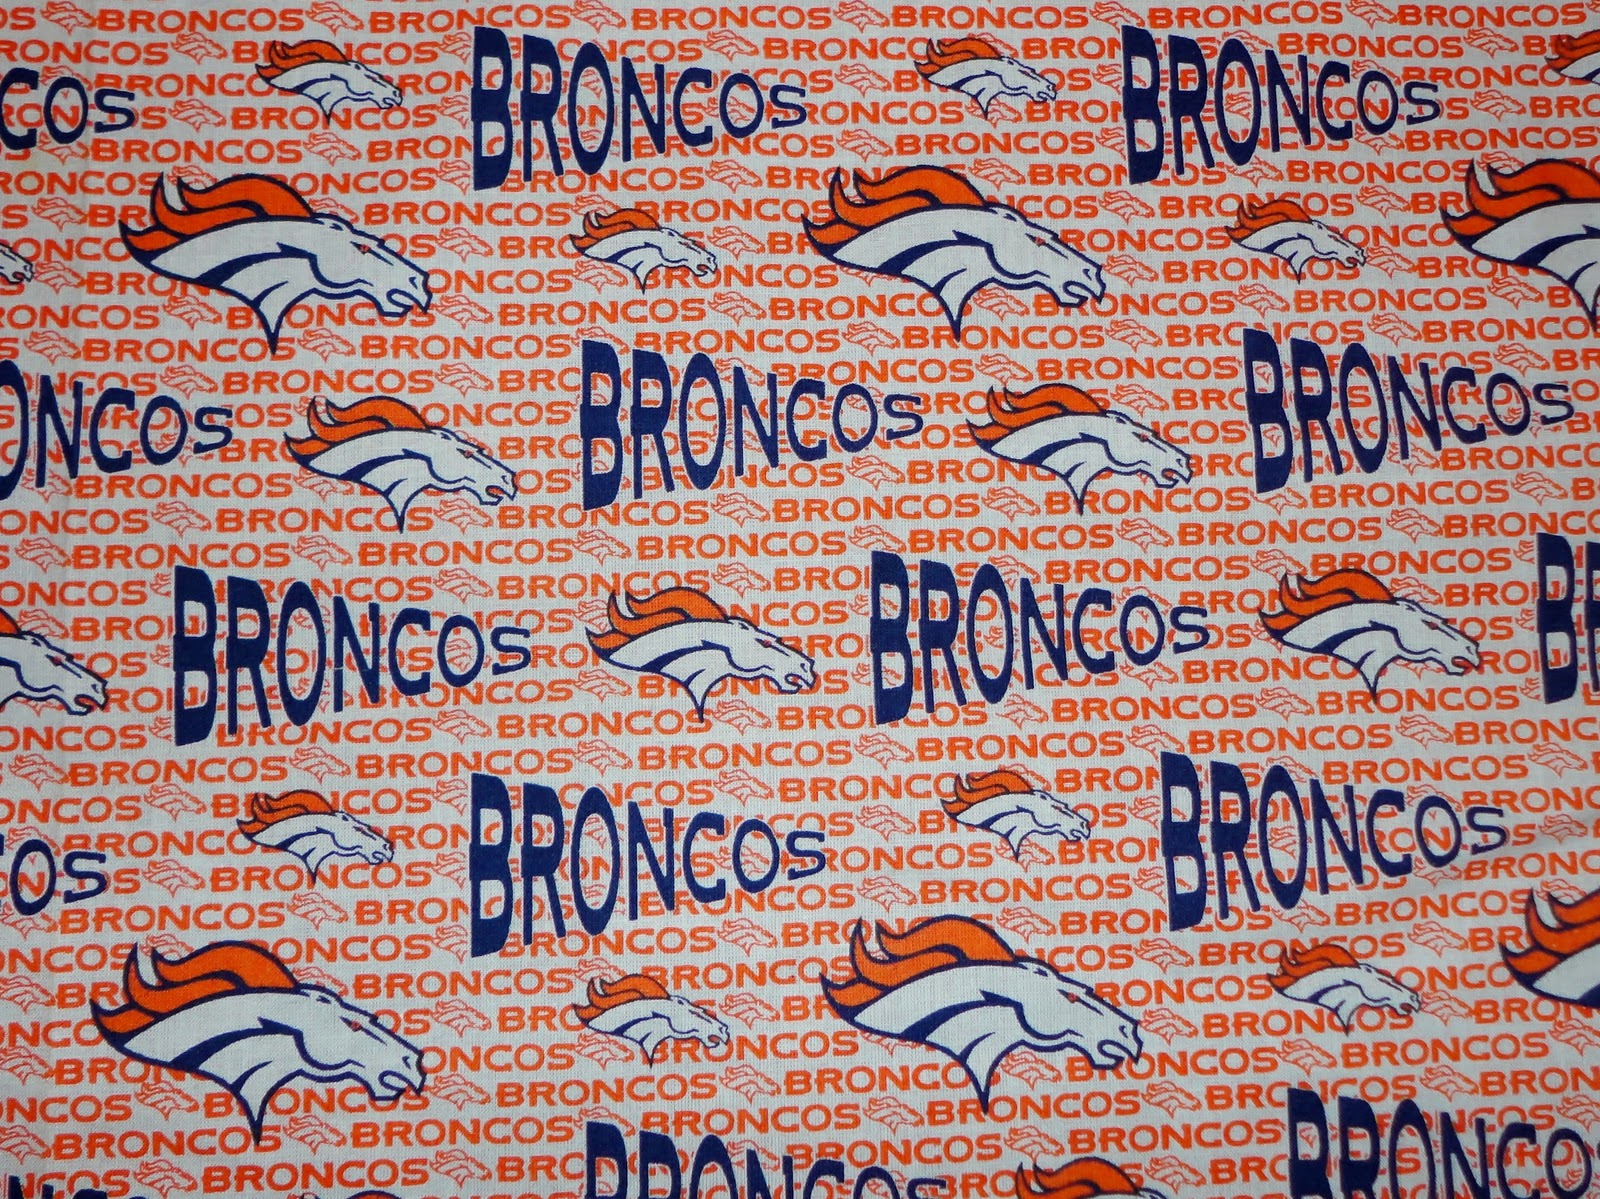 Greetings from the grotto denver bronco and harley davidson baby denver bronco and harley davidson baby blankets kristyandbryce Gallery